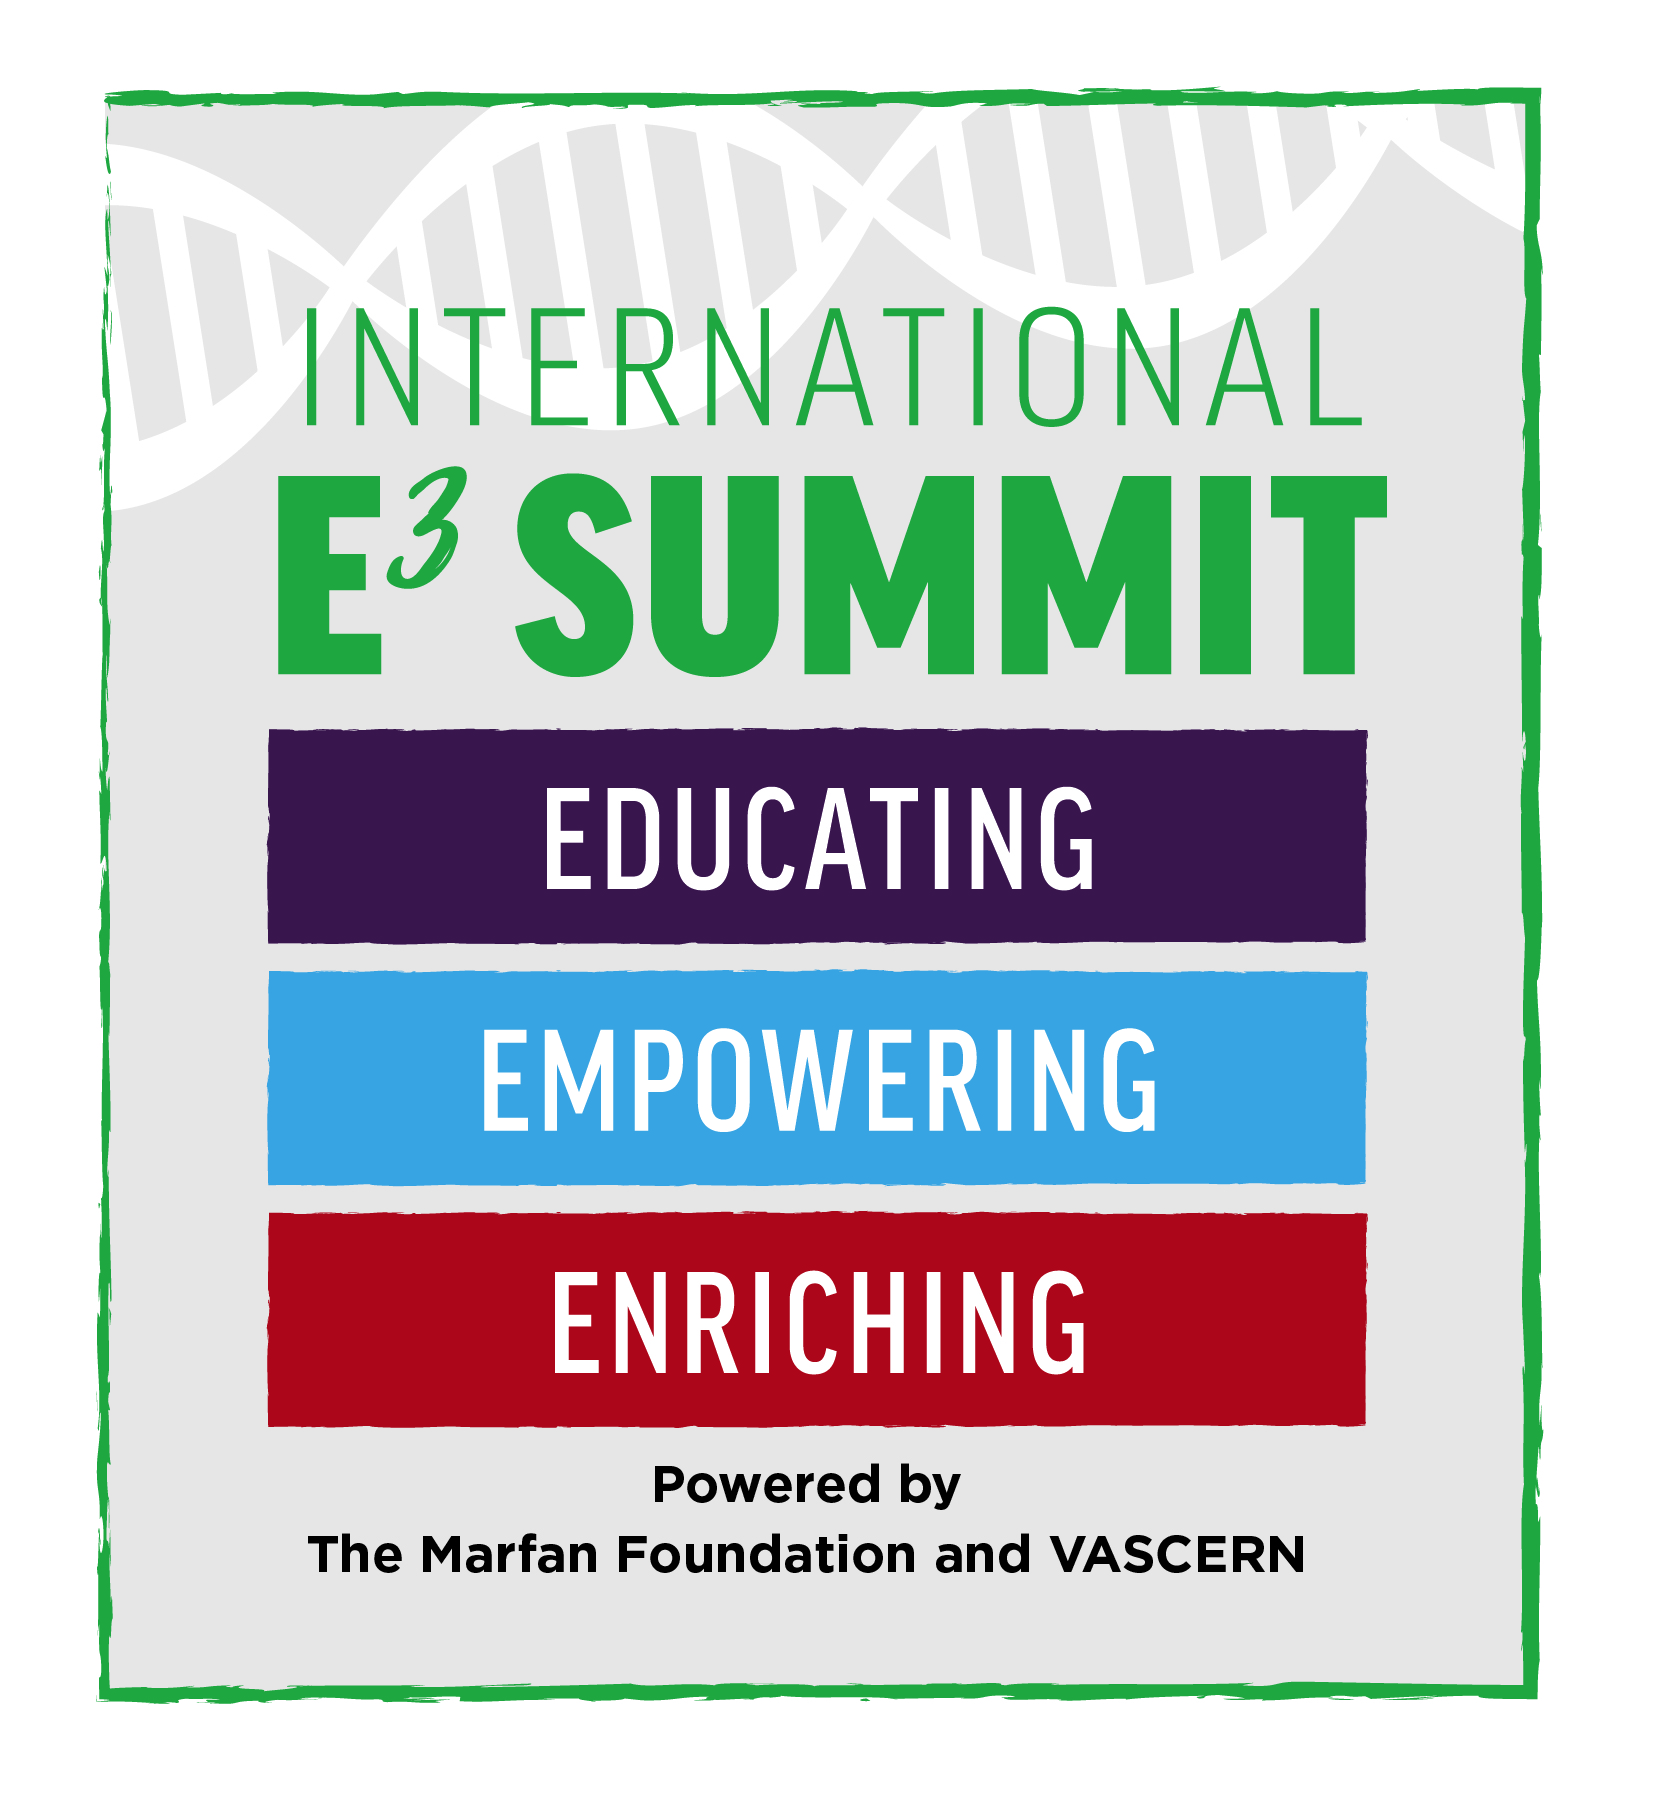 VASCERN Partners with The Marfan Foundation for the First-Ever E3 International Summit!